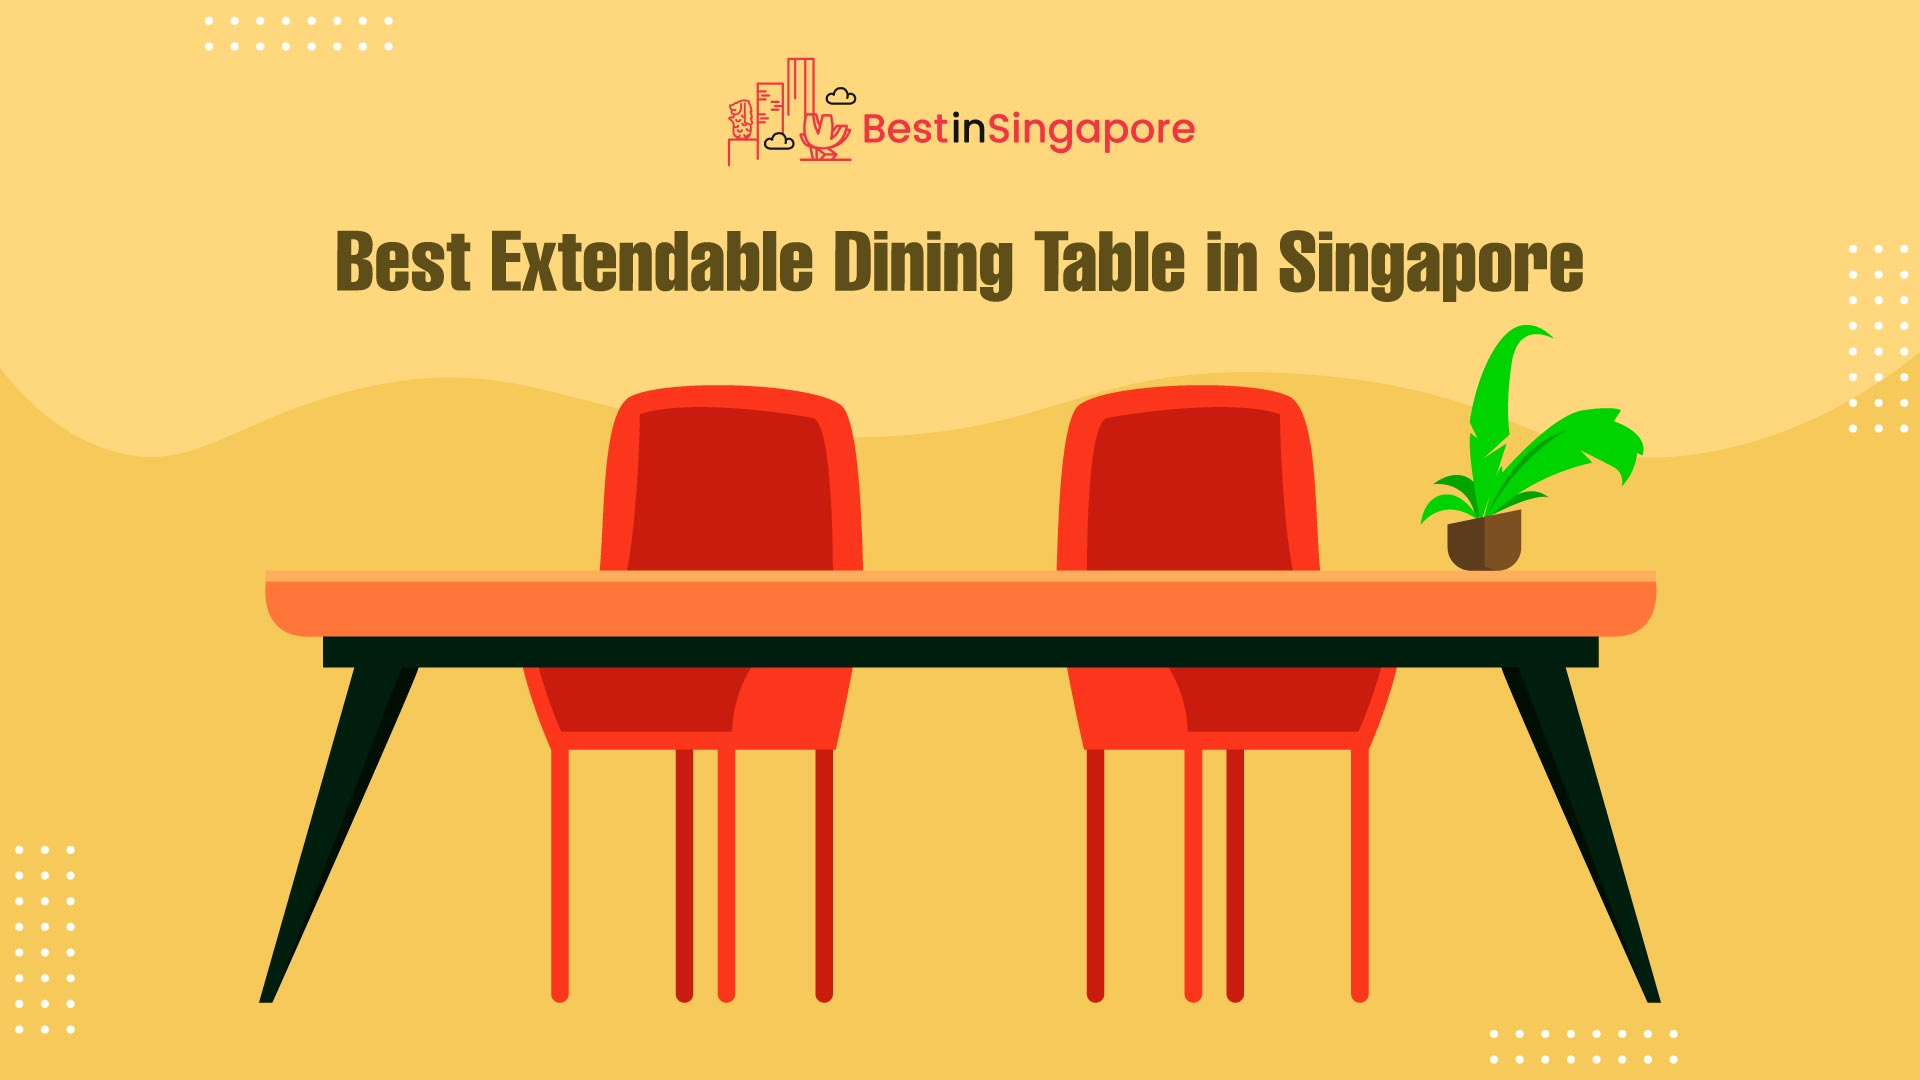 Best Extendable Dining Table in Singapore